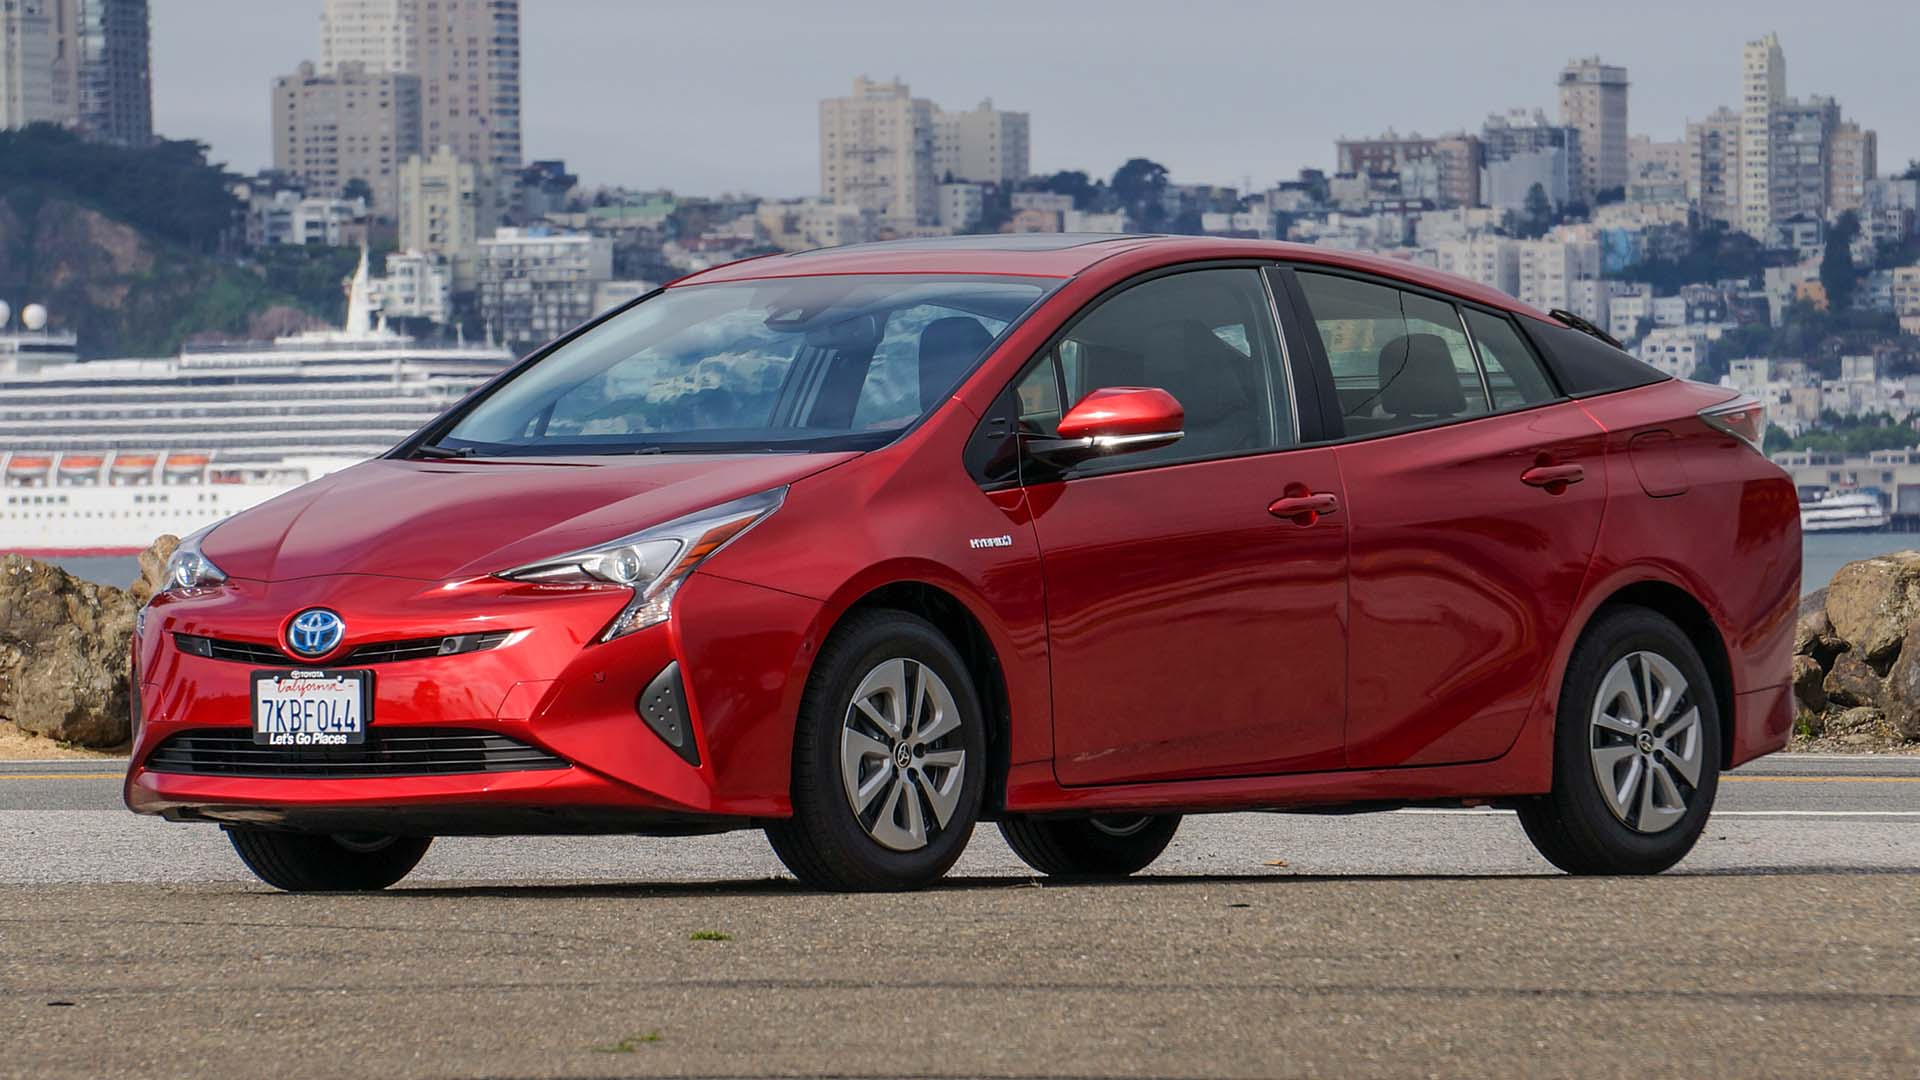 Most Reliable: Toyota Prius